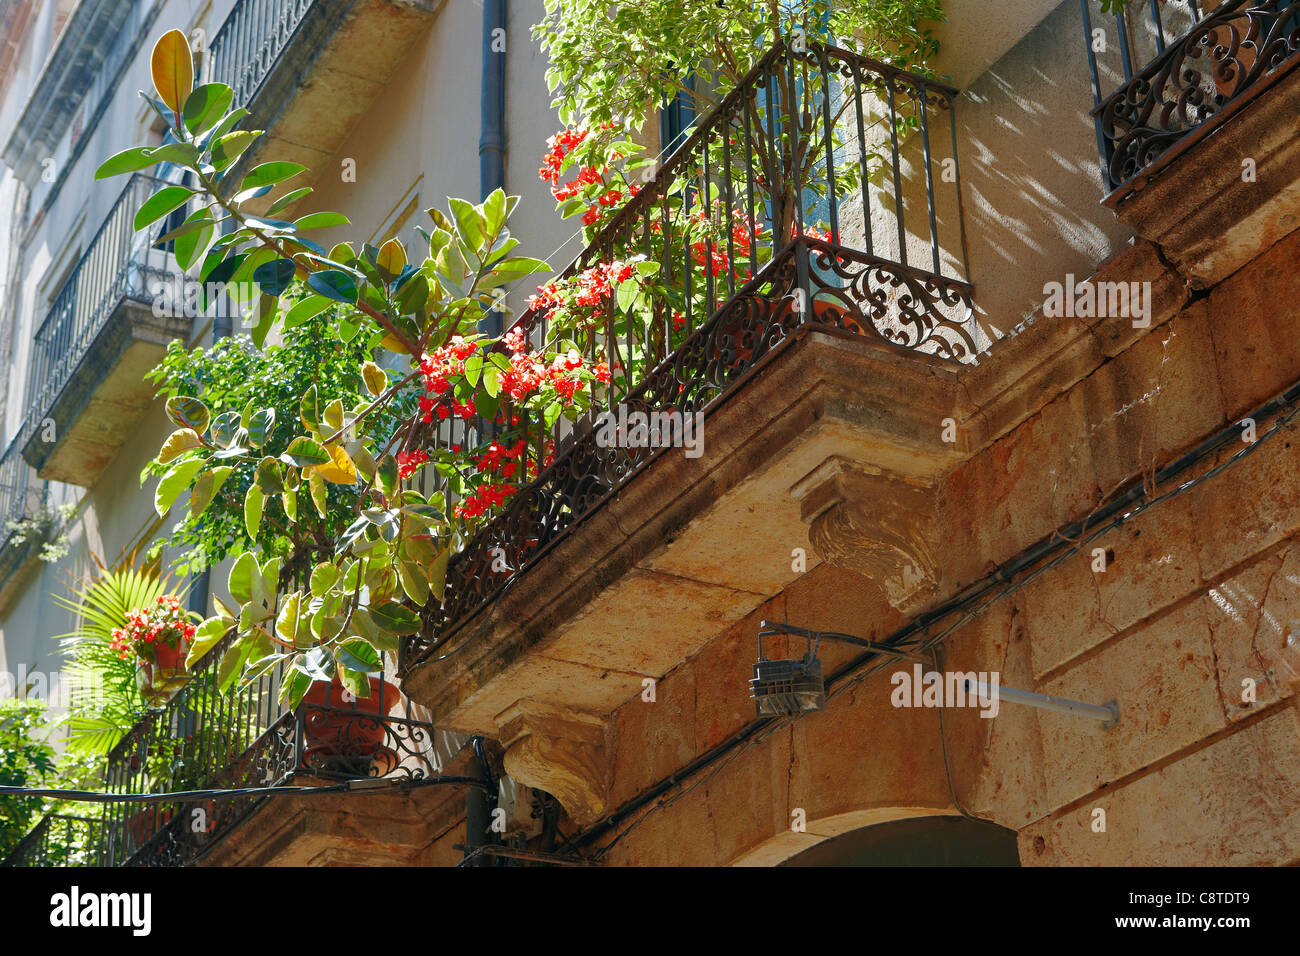 Potted plants on a balcony. Tarragona Old Town, Catalonia, Spain. - Stock Image